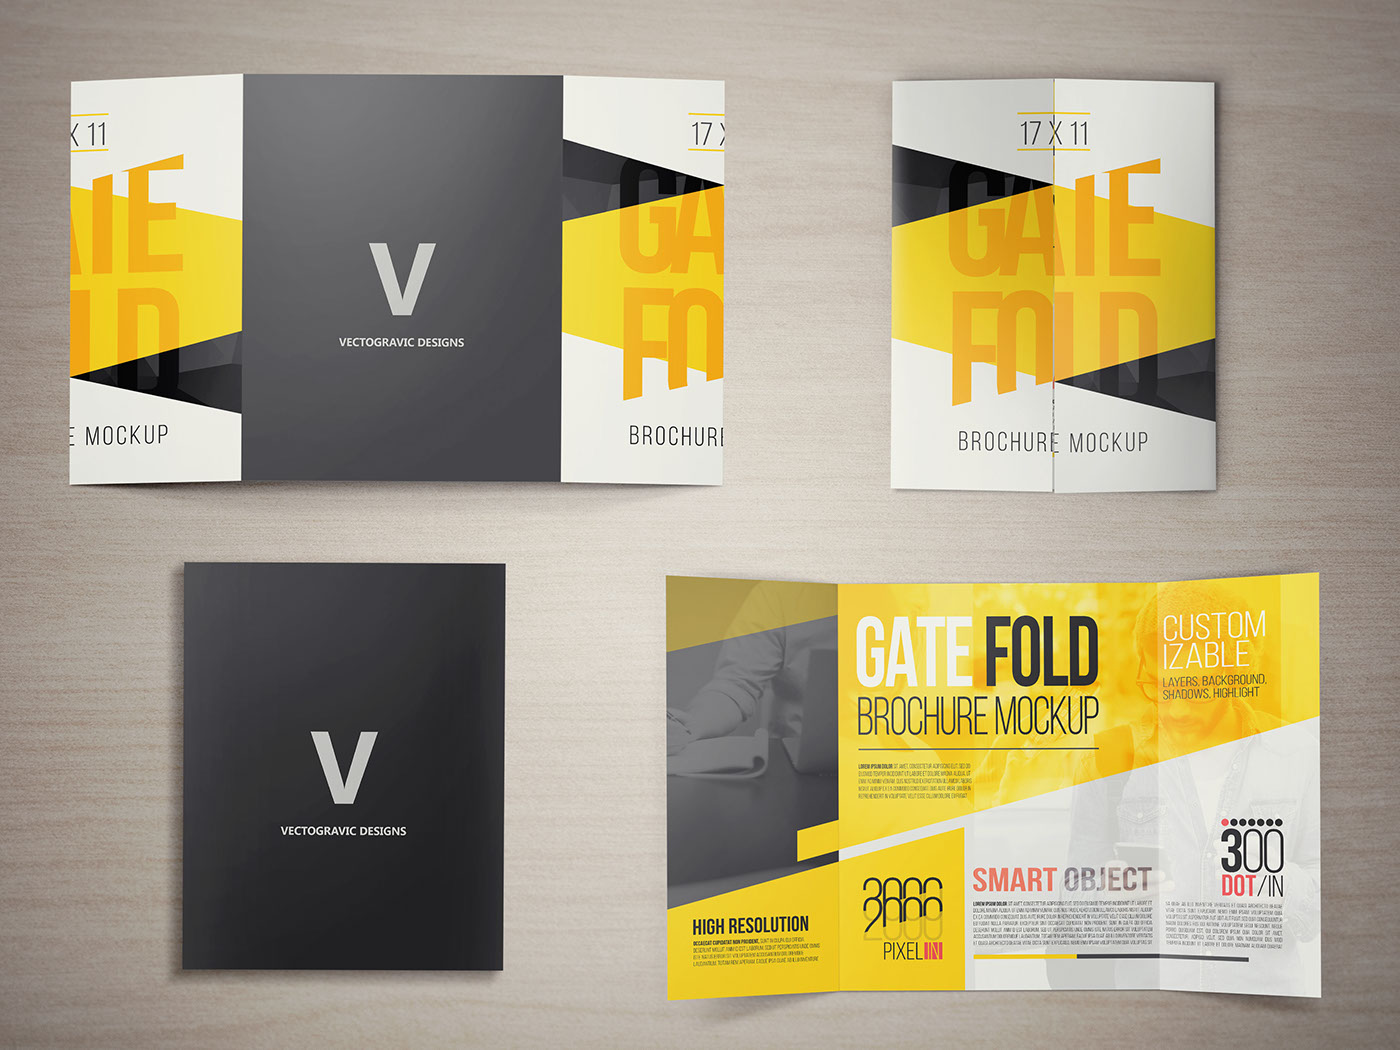 Beau Five PSD Files Of 17×11 Gate Fold Brochure Mockup, Editable And Easy To  Customize, Organized Layers, High Resolution.